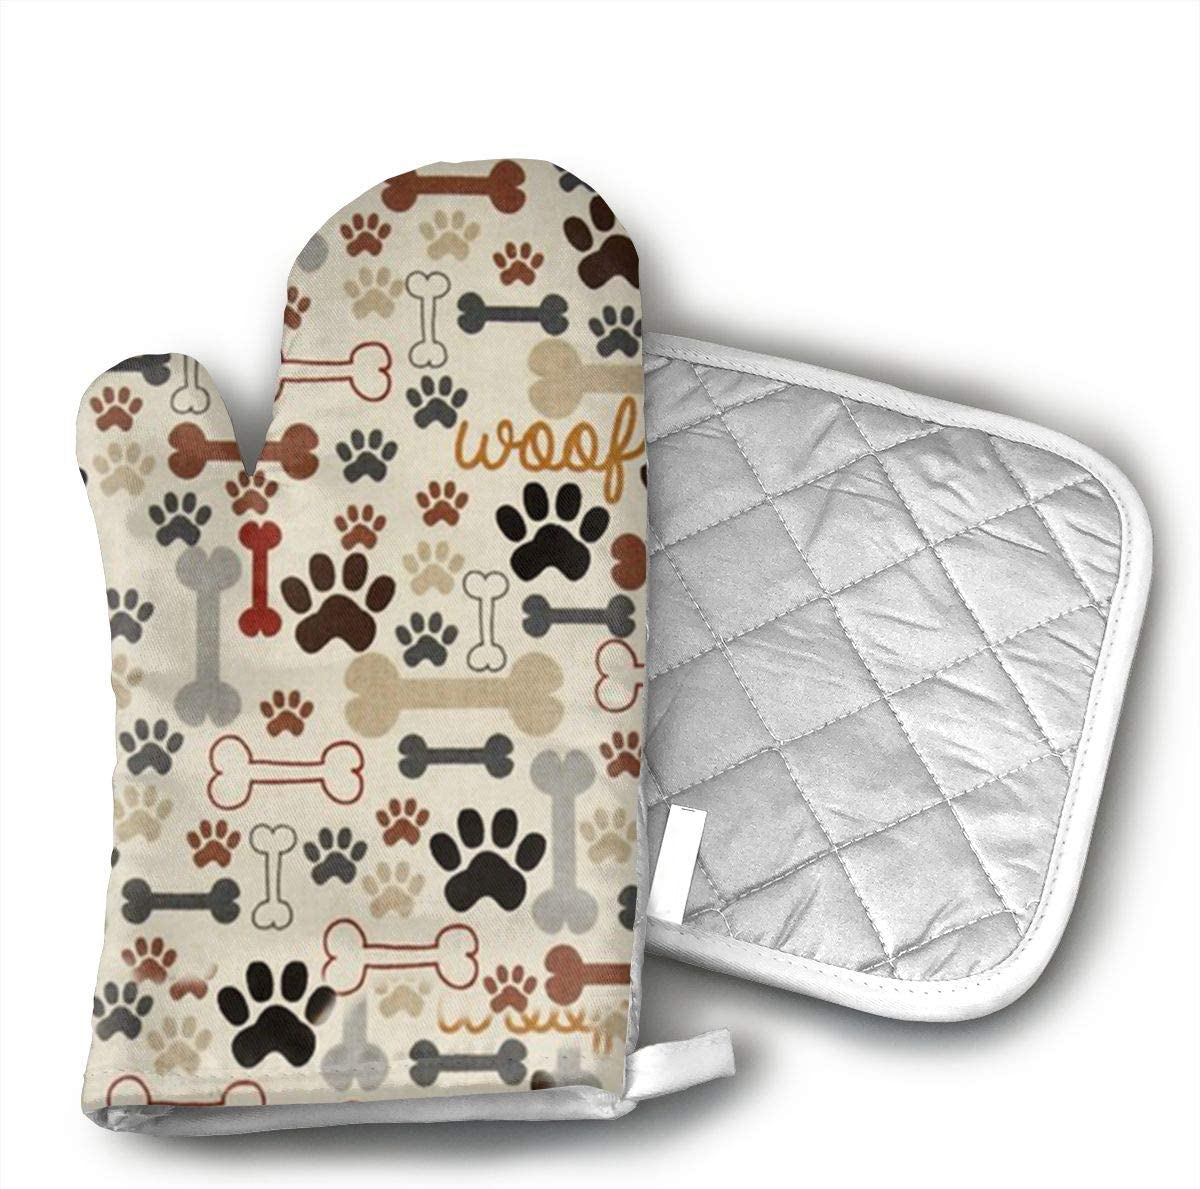 CHWEYAQ Dog Bones Paw Prints Oven Mitts Heat Resistant Cooking Gloves Non-Slip Waterproof Potholders